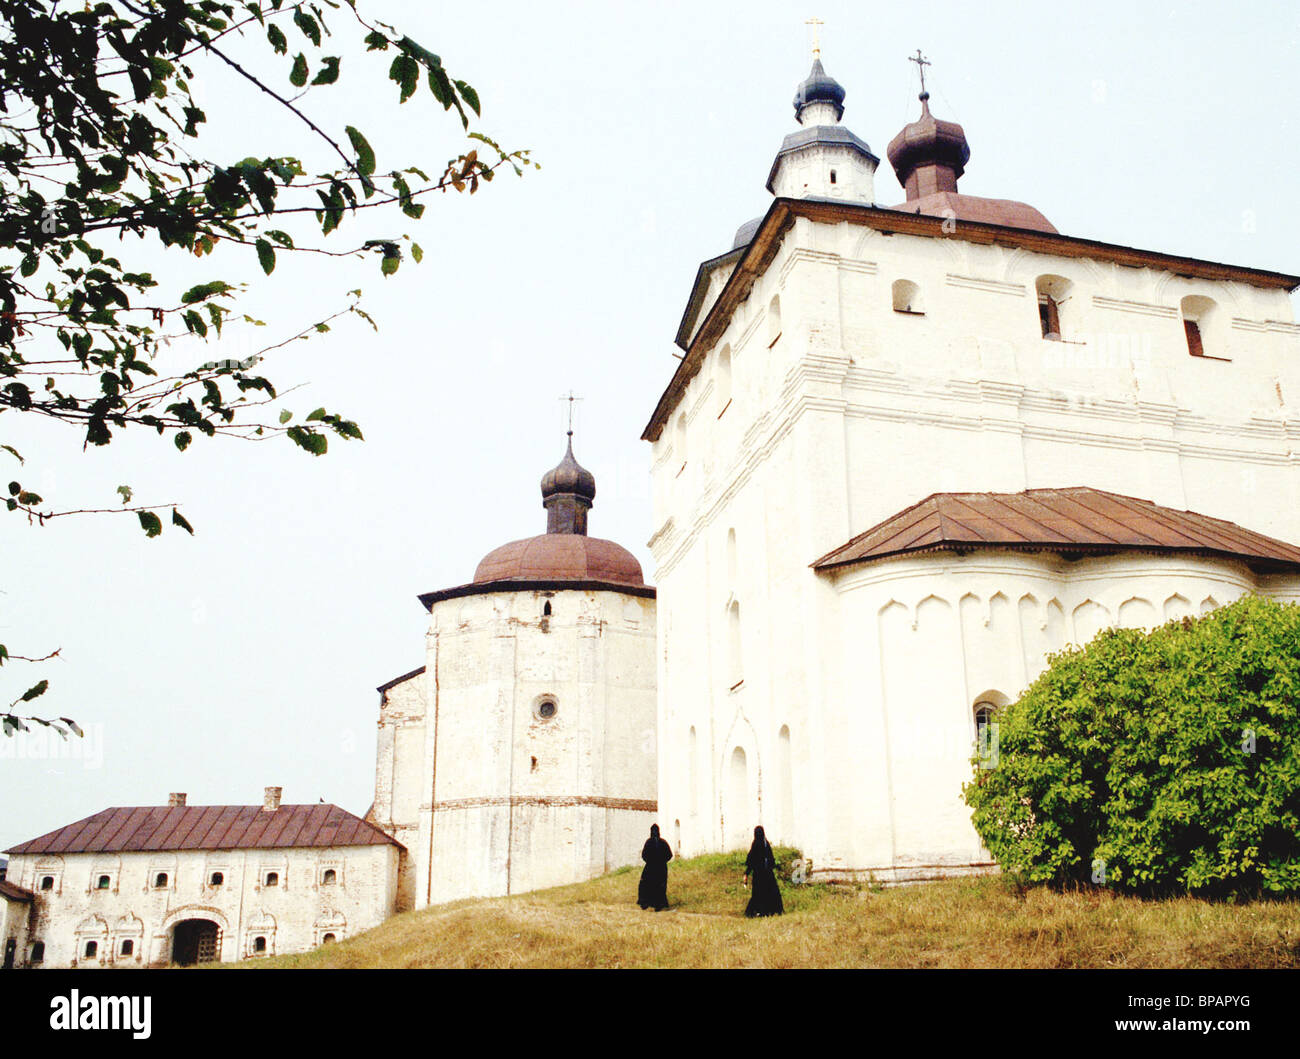 A view of the world-famous Kirilo-Belozersky monastery dated back to 1397 - Stock Image